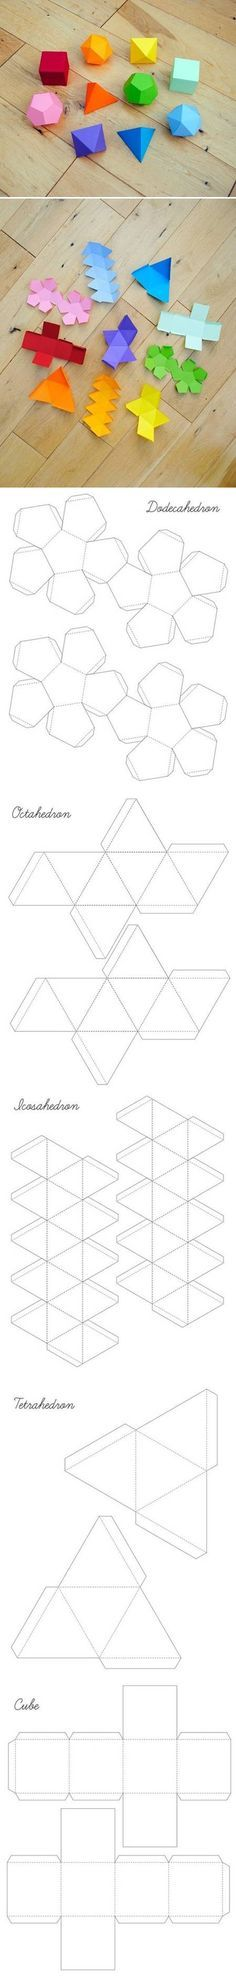 19 ideas for origami geometric diy projects Origami Paper, Diy Paper, Paper Crafting, Fun Origami, Origami Design, Origami Box, Diy And Crafts, Crafts For Kids, Arts And Crafts